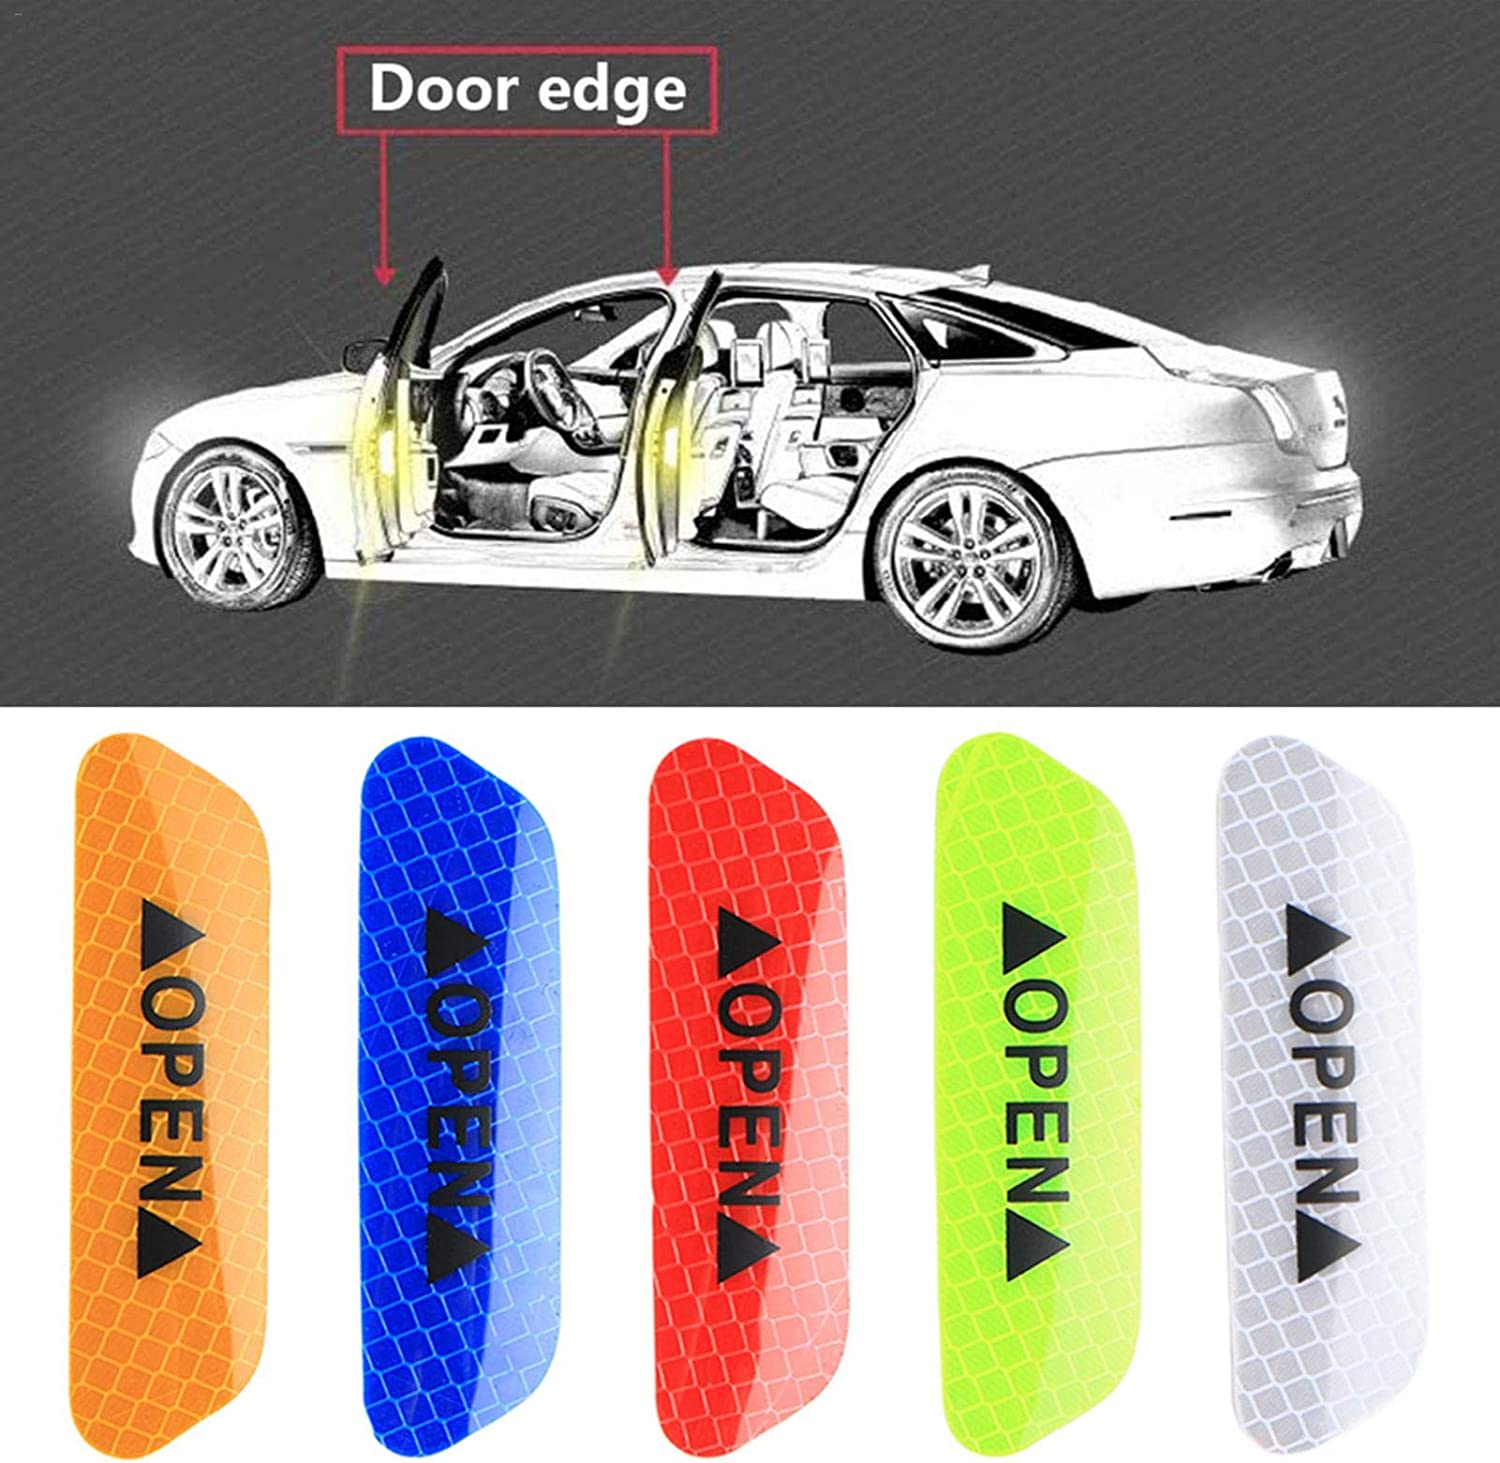 4pcs Car Door Edge Reflective Strip Anti-collision Safety Warning Stickers t